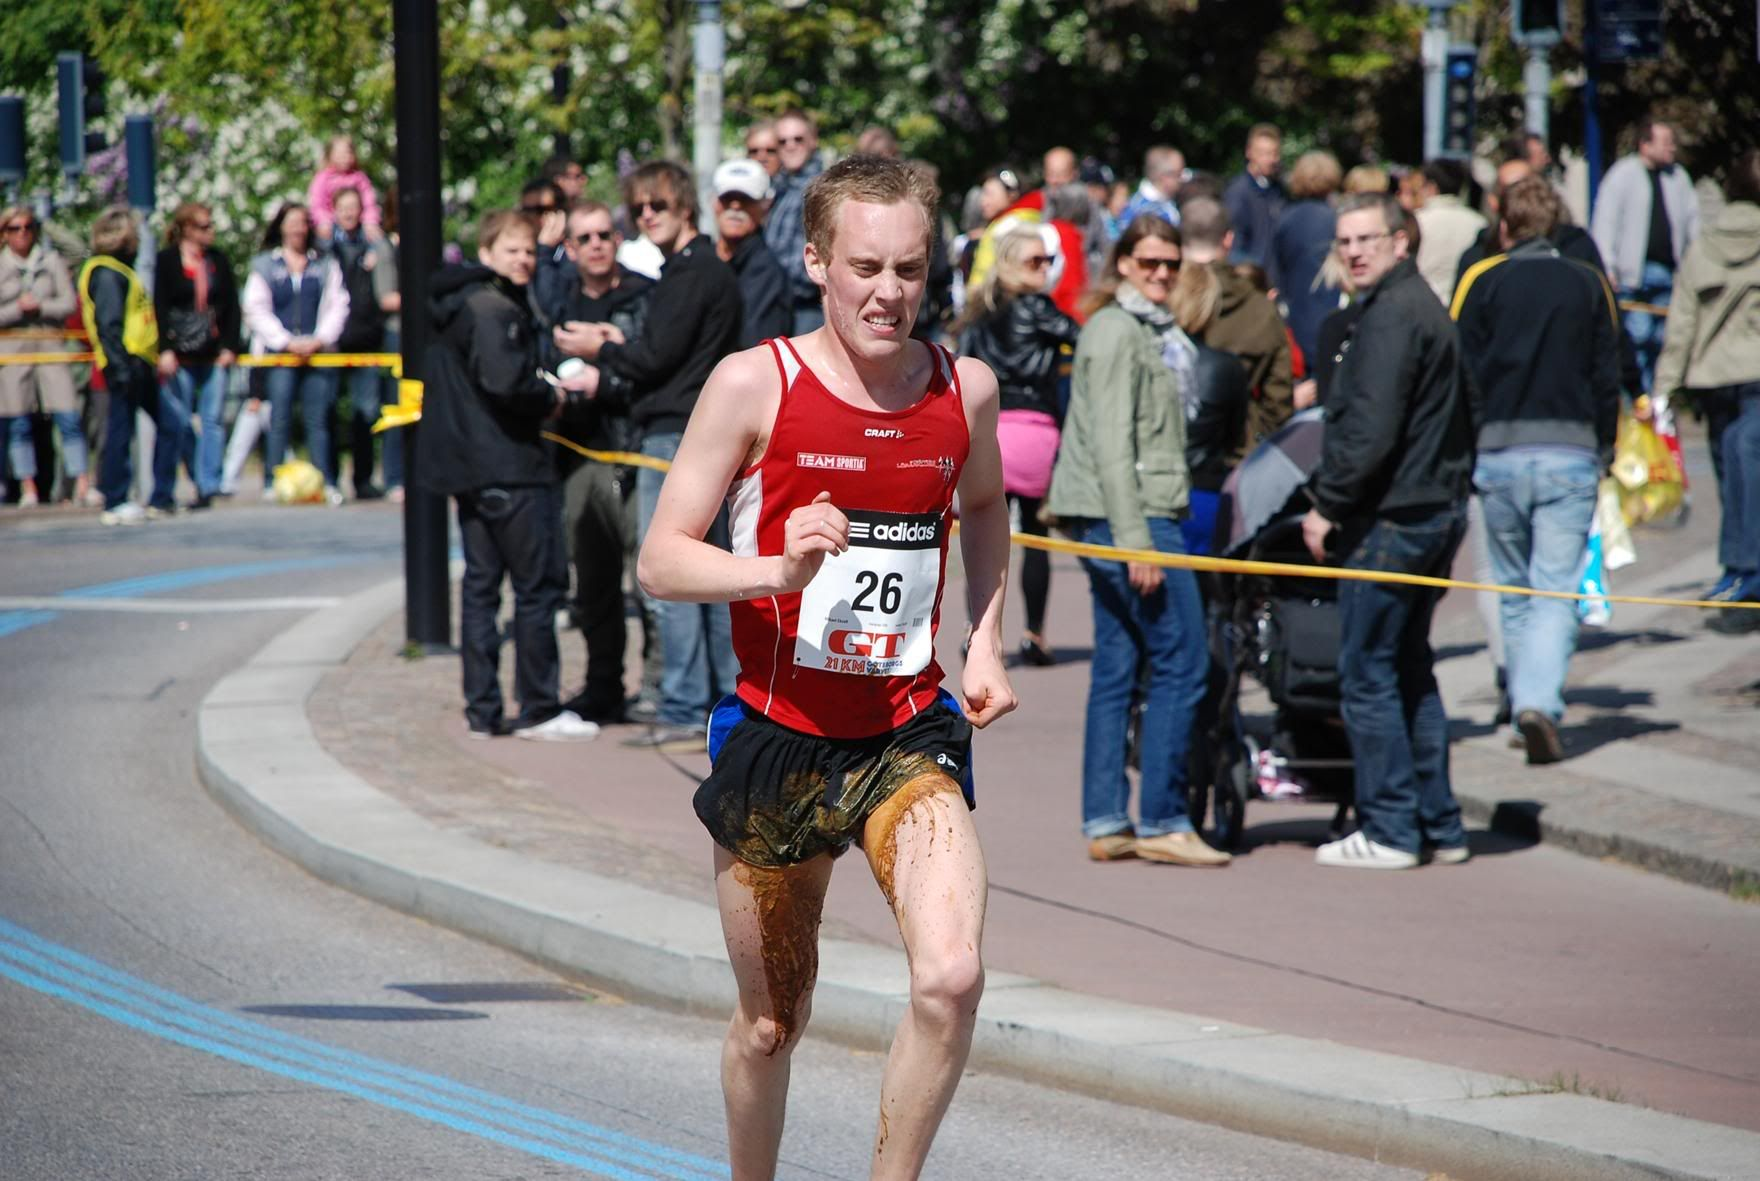 10 Athletes Who Shockingly Pooped Their Pants While Competing